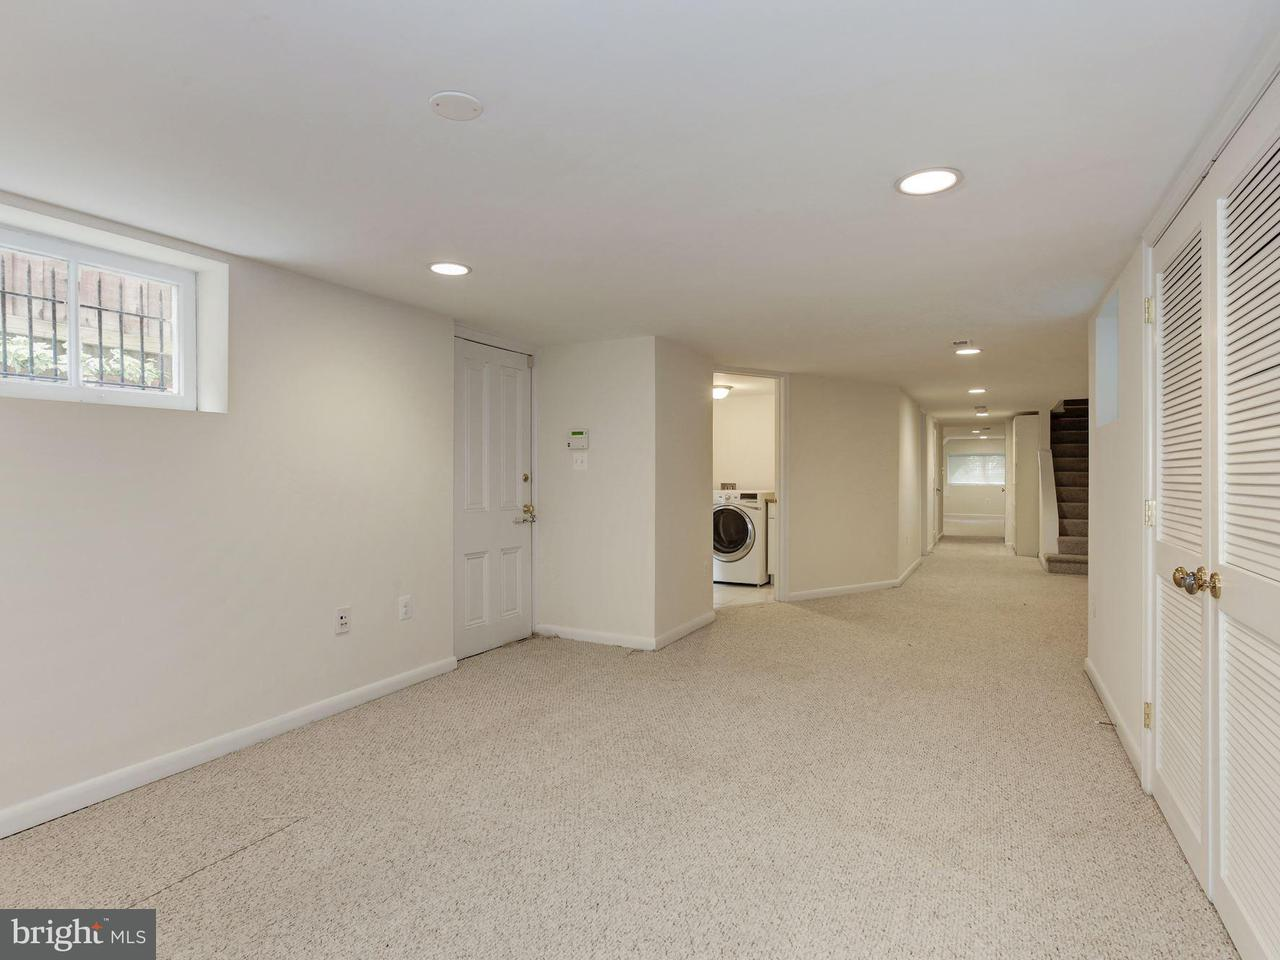 Additional photo for property listing at 1609 35th St NW  Washington, District Of Columbia 20007 United States